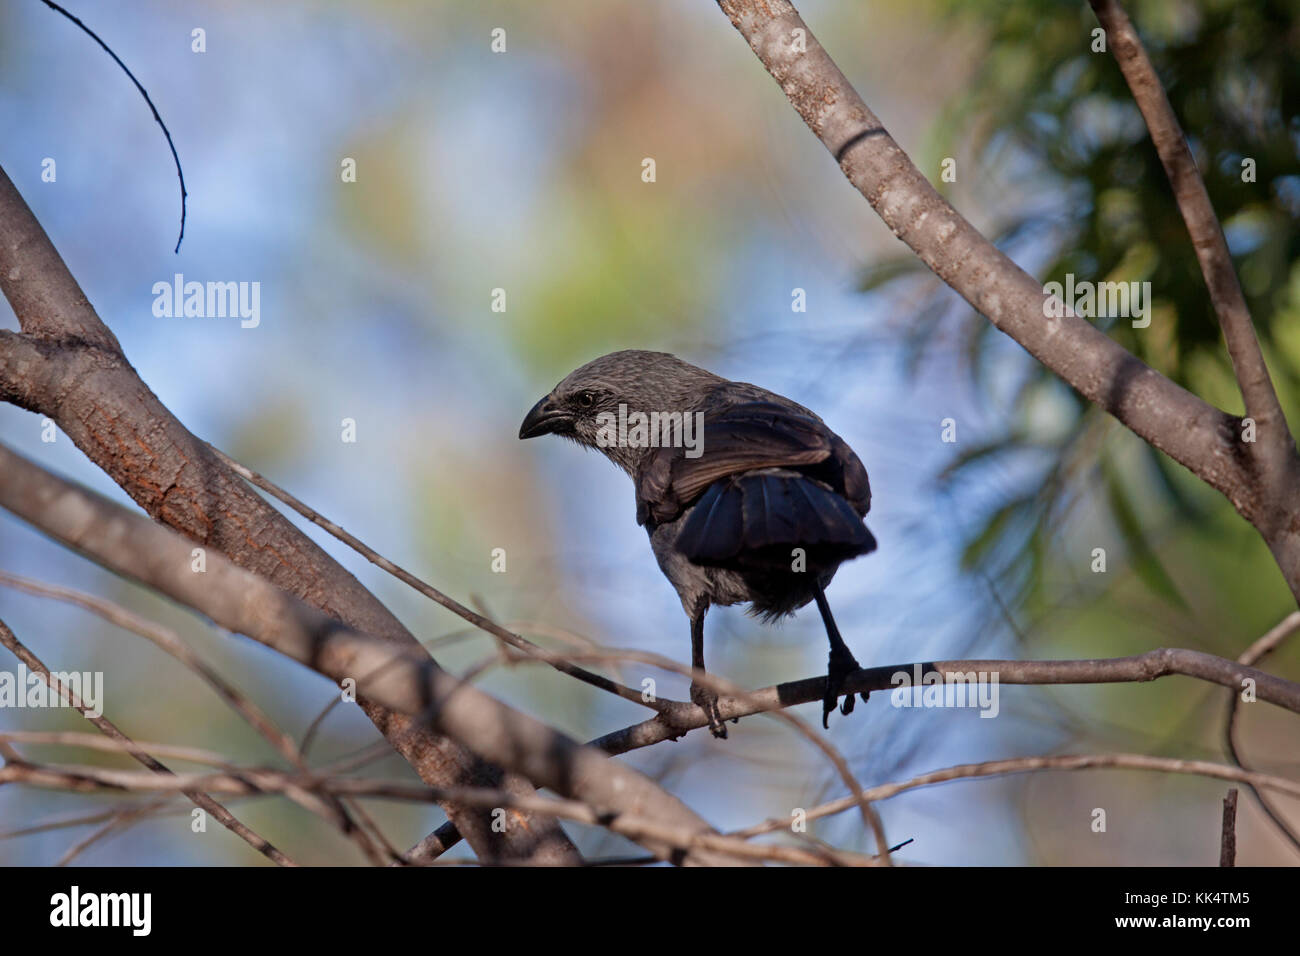 Apostlebird perched on branch of tree in Queensland Australia - Stock Image